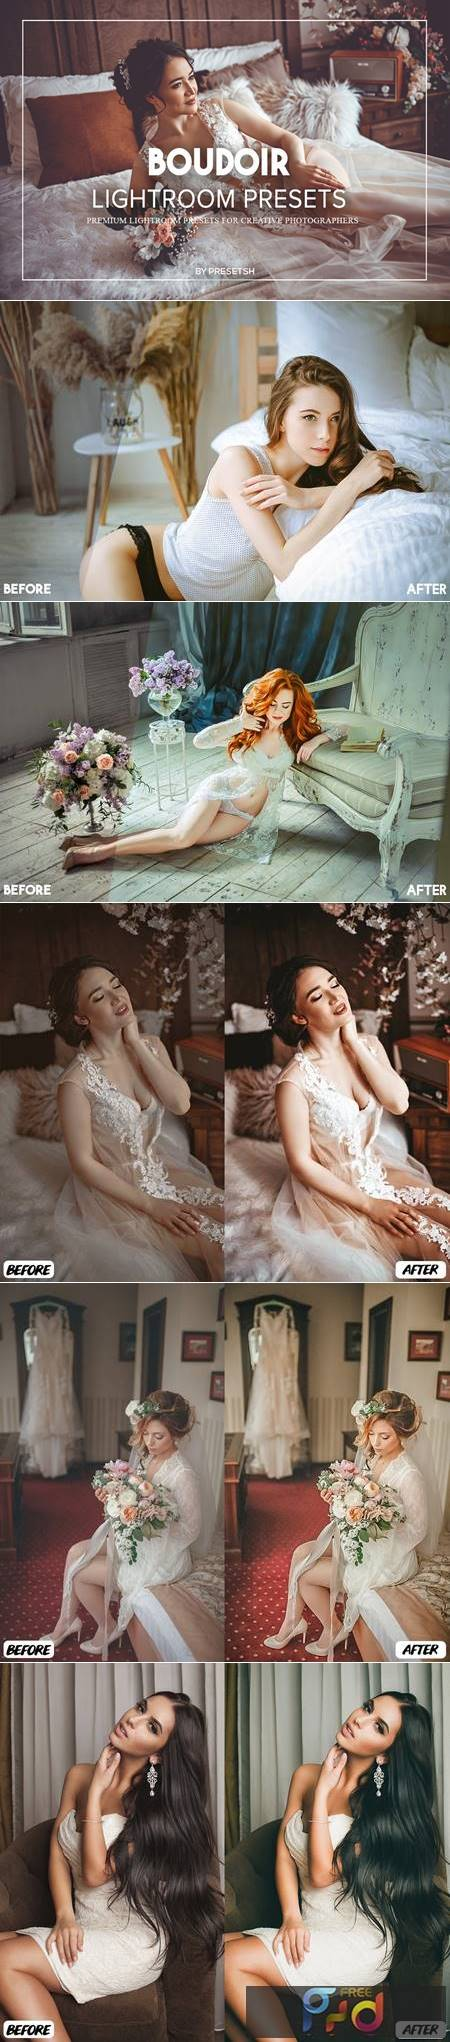 Boudoir Lightroom Presets 8HZ33GK 1